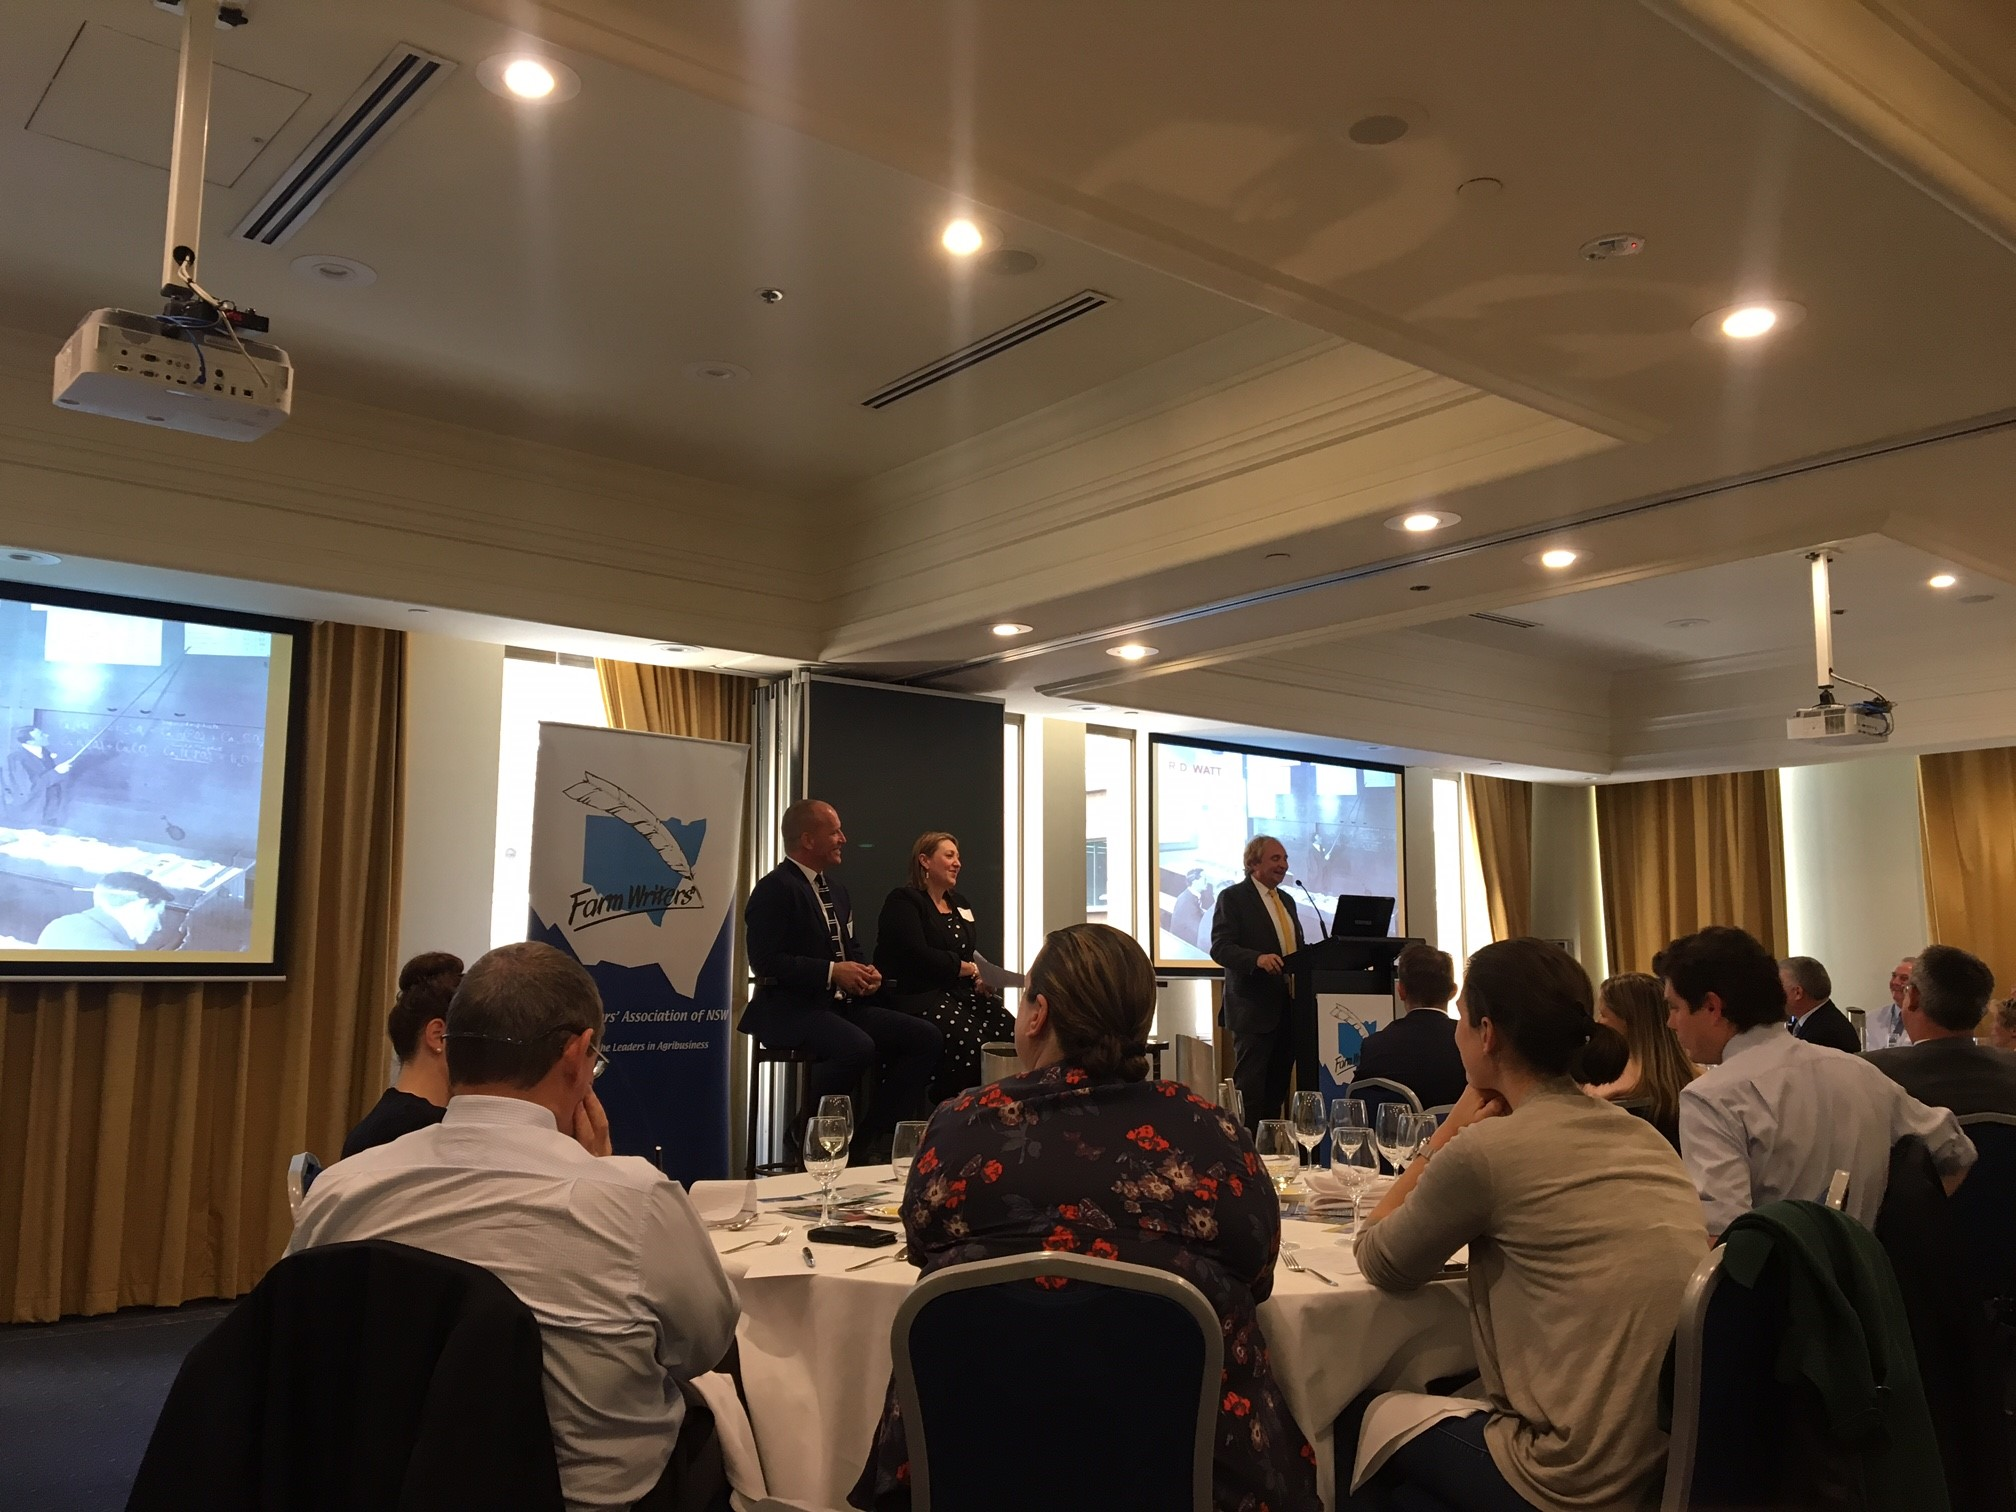 Speakers discussing the topic Incubating talent for Agriculture at the Farm Writers' Association of NSW event last week.